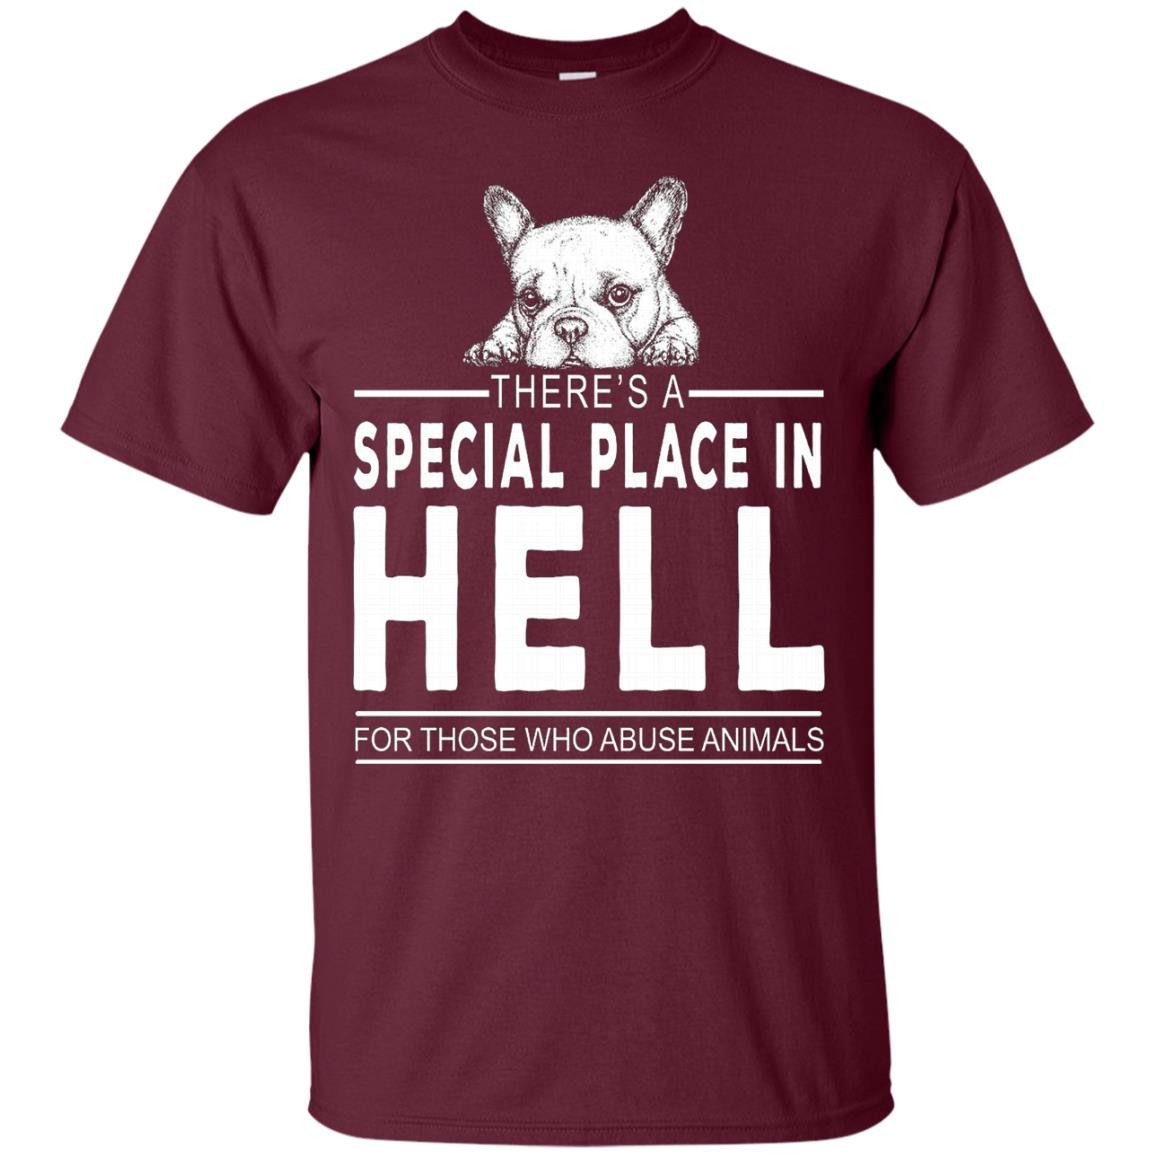 Place In Hell For Who Abuse Animals - T-Shirt